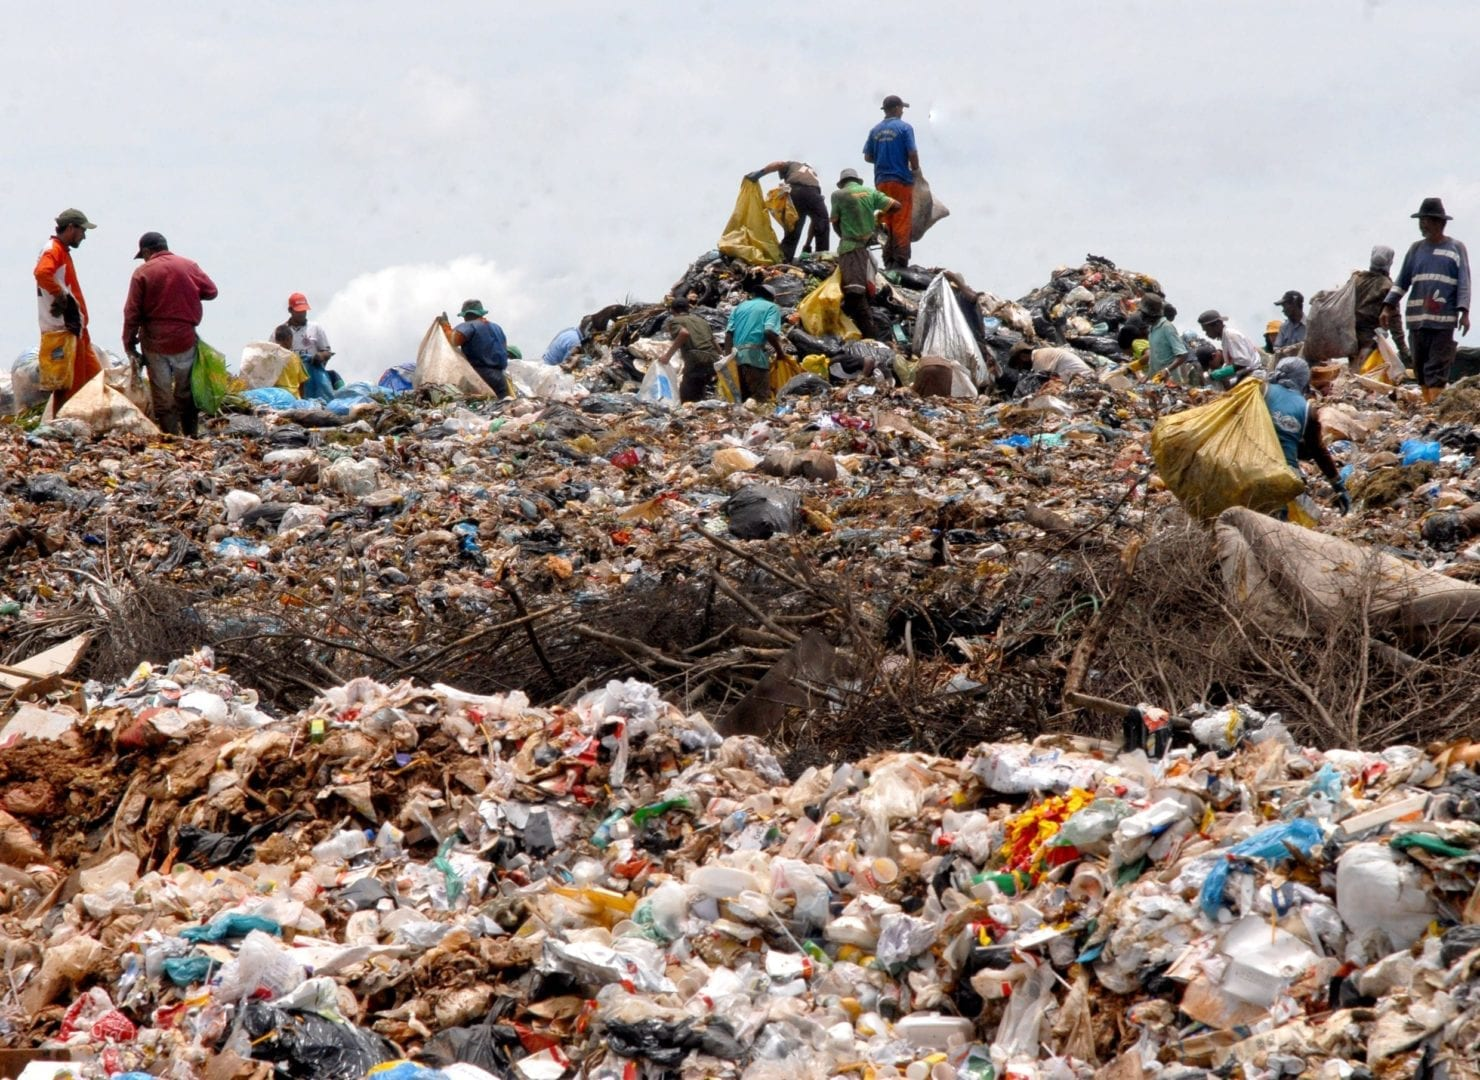 Targeted research needed on impacts and opportunities around waste